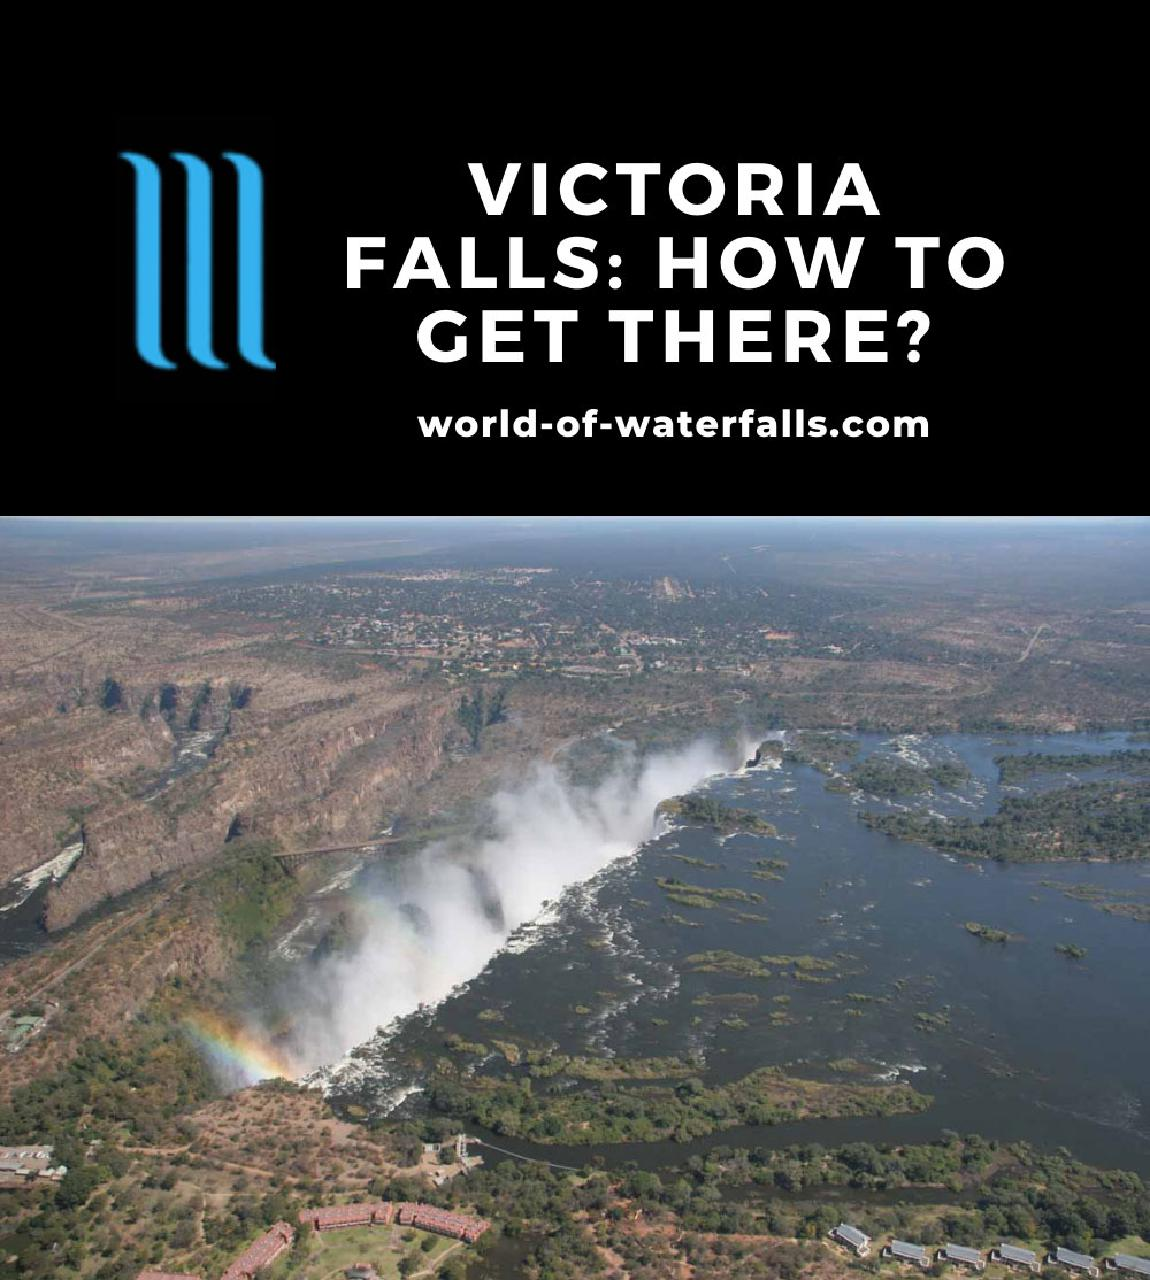 Victoria Falls: How to Get There?